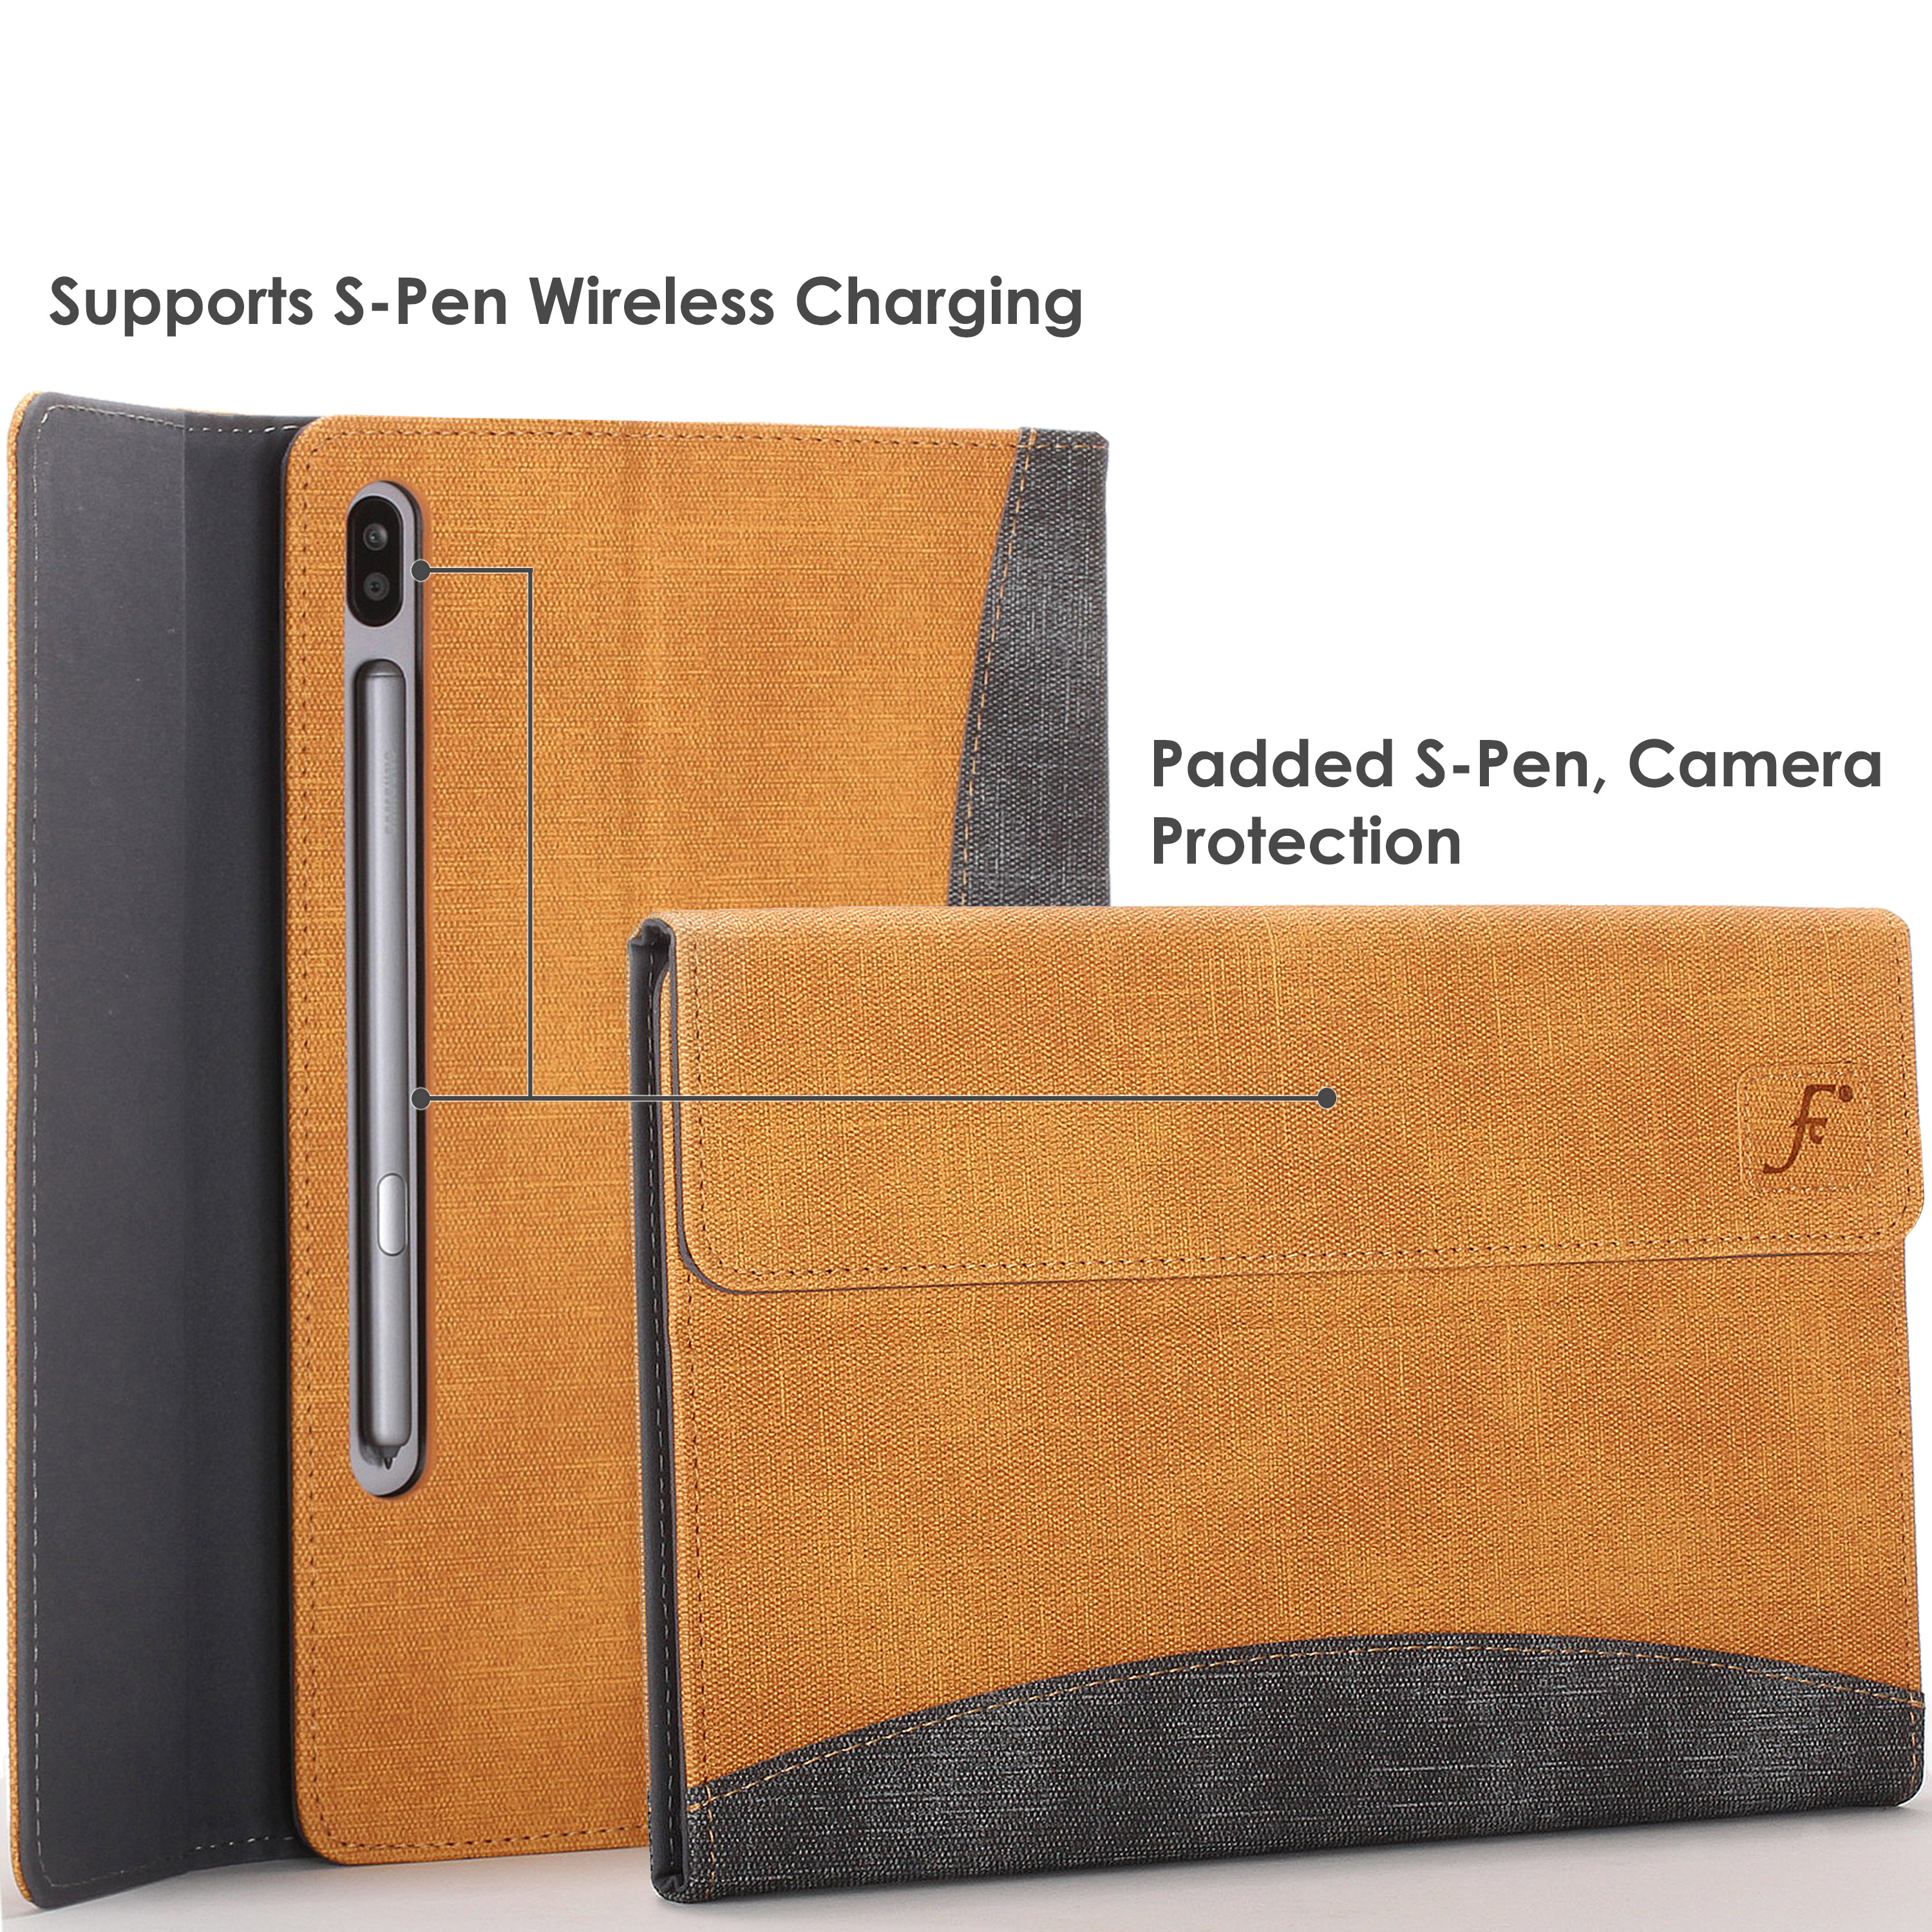 Samsung-Galaxy-Tab-S6-10-5-Case-Cover-Stand-Stylus-amp-Screen-Protector thumbnail 45